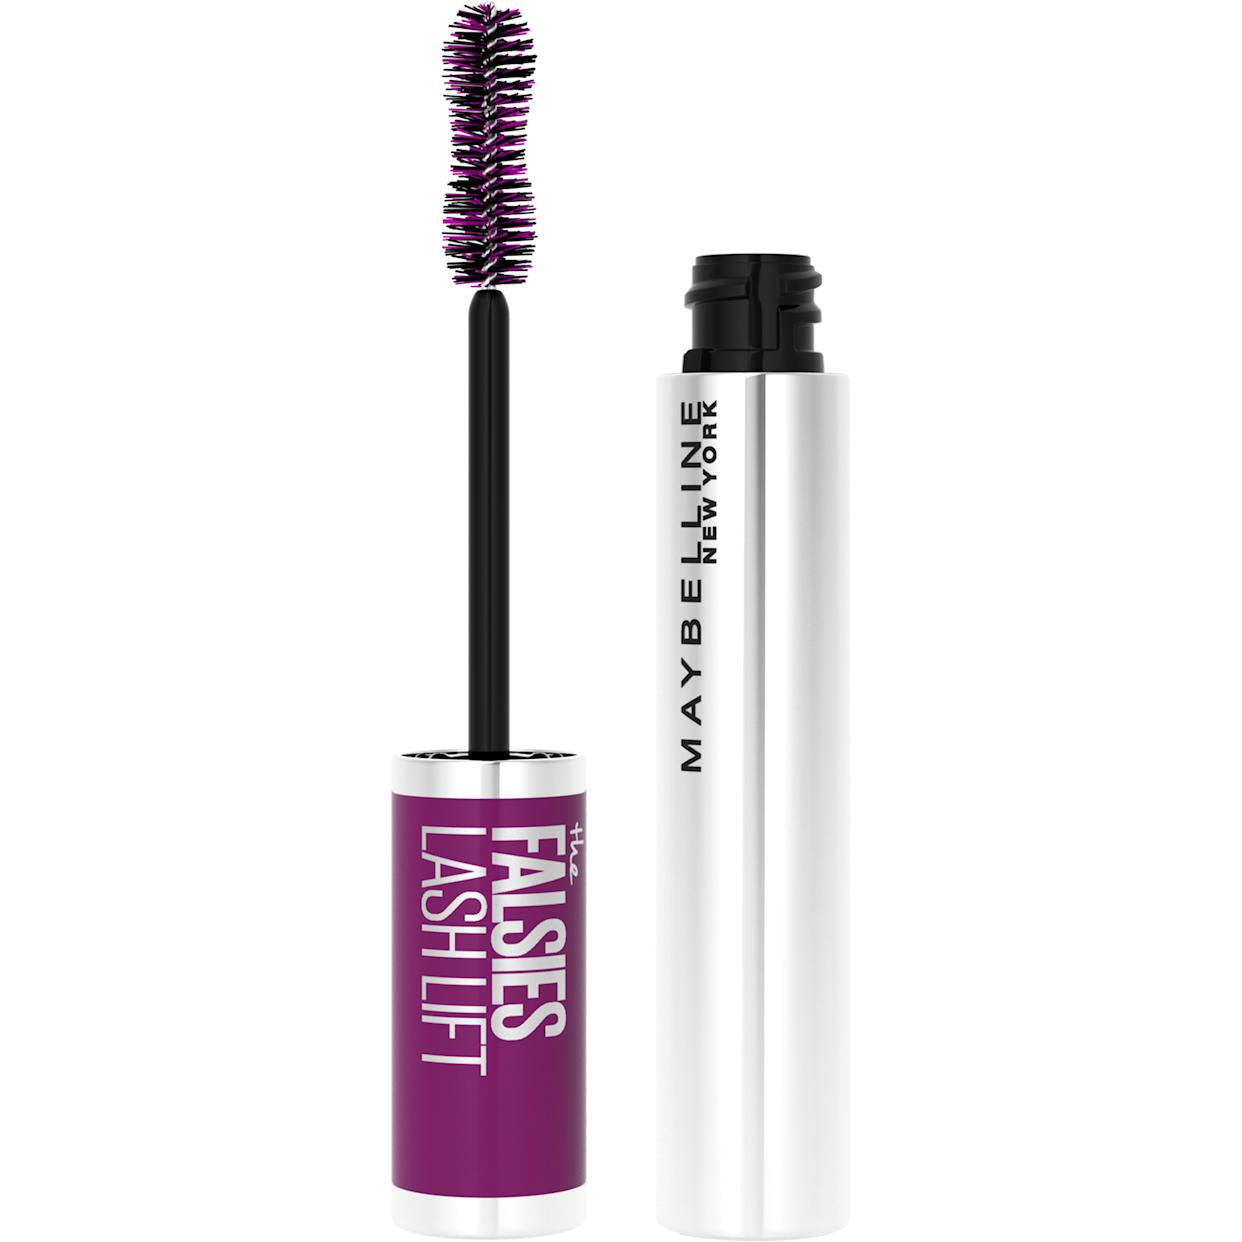 Maybelline The Falsies Lash Lift Washable Mascara (Walmart / Walmart)